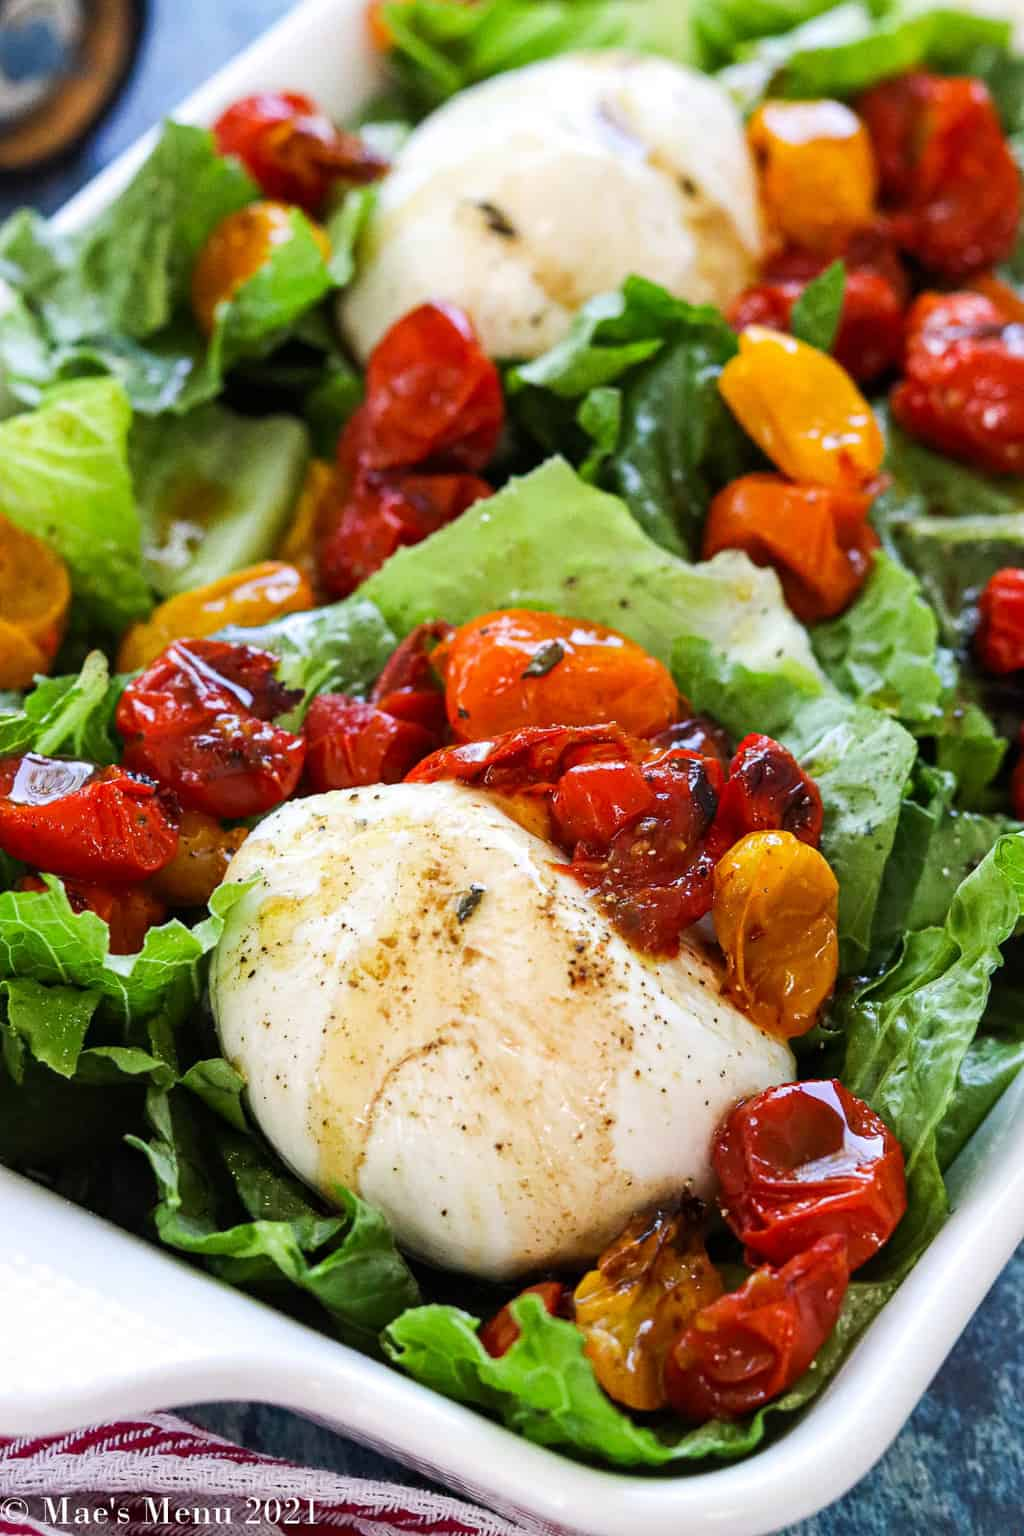 An up-close shot of burrata salad with tomatoes in a white serving platter